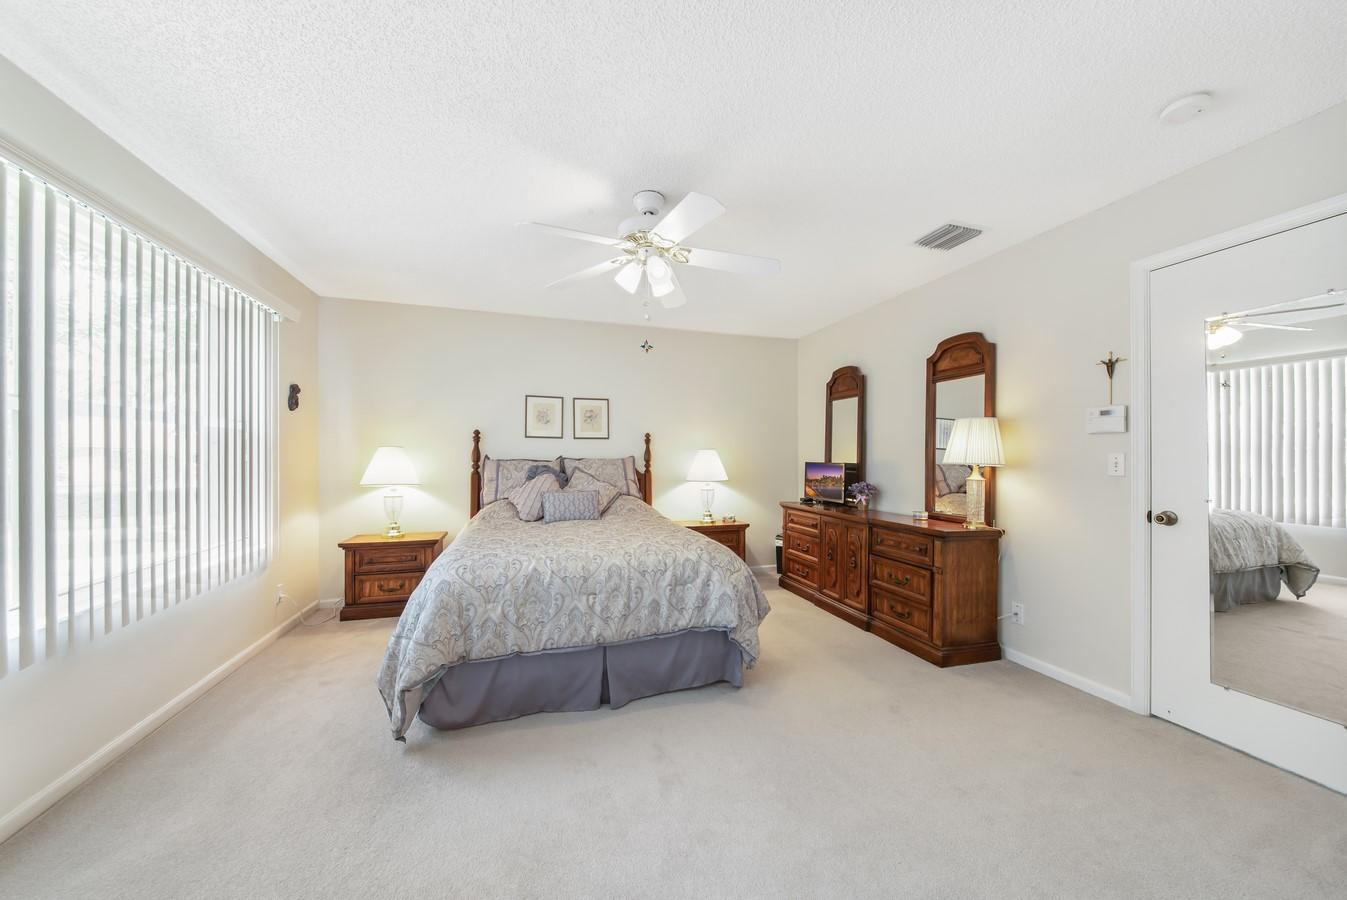 7851 Sienna Springs Drive Lake Worth, FL 33463 small photo 15